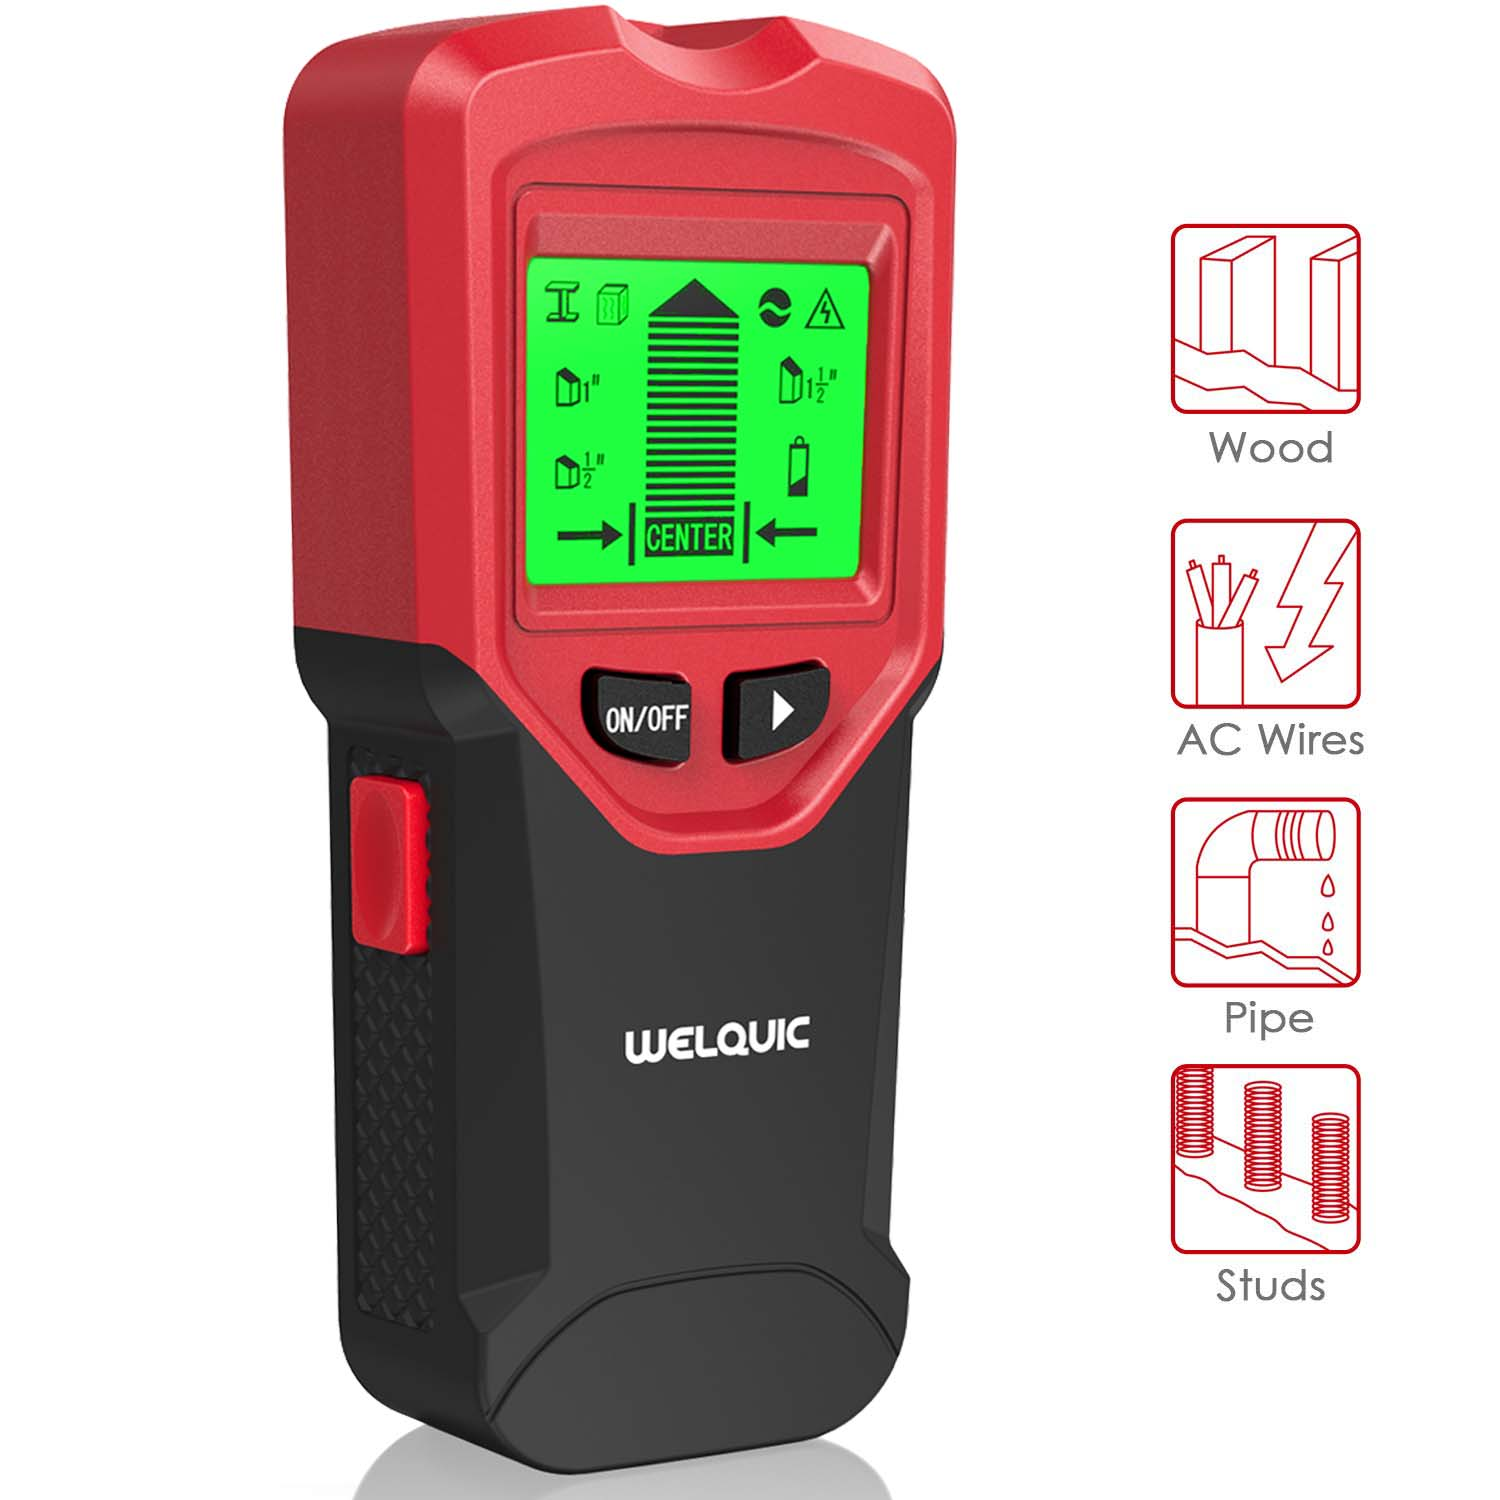 WELQUIC Stud Finder Tool, Magnetic Stud Finder and Level Wall Stud Sensor Scanner Detector with LCD Display, 3 in 1 Metal AC Live Wire Detector for AC Live Wire, Wood, Metal, Deep Scanning